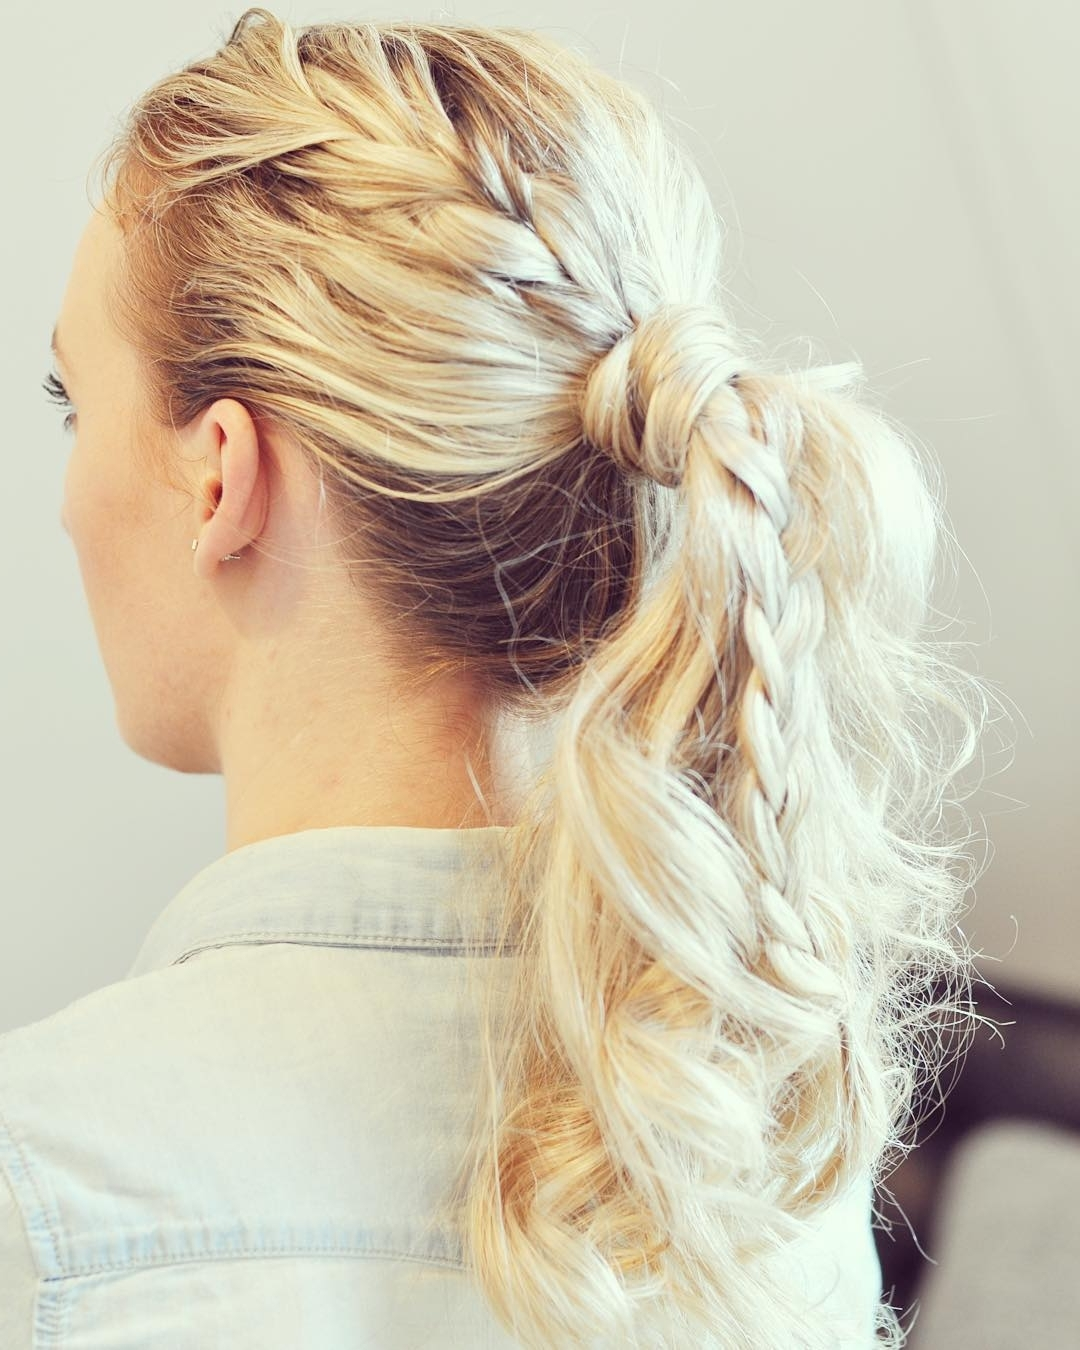 Fashionable Blonde Pony With Double Braids Intended For 30 Braided Ponytail Hairstyles To Slay In (View 3 of 15)